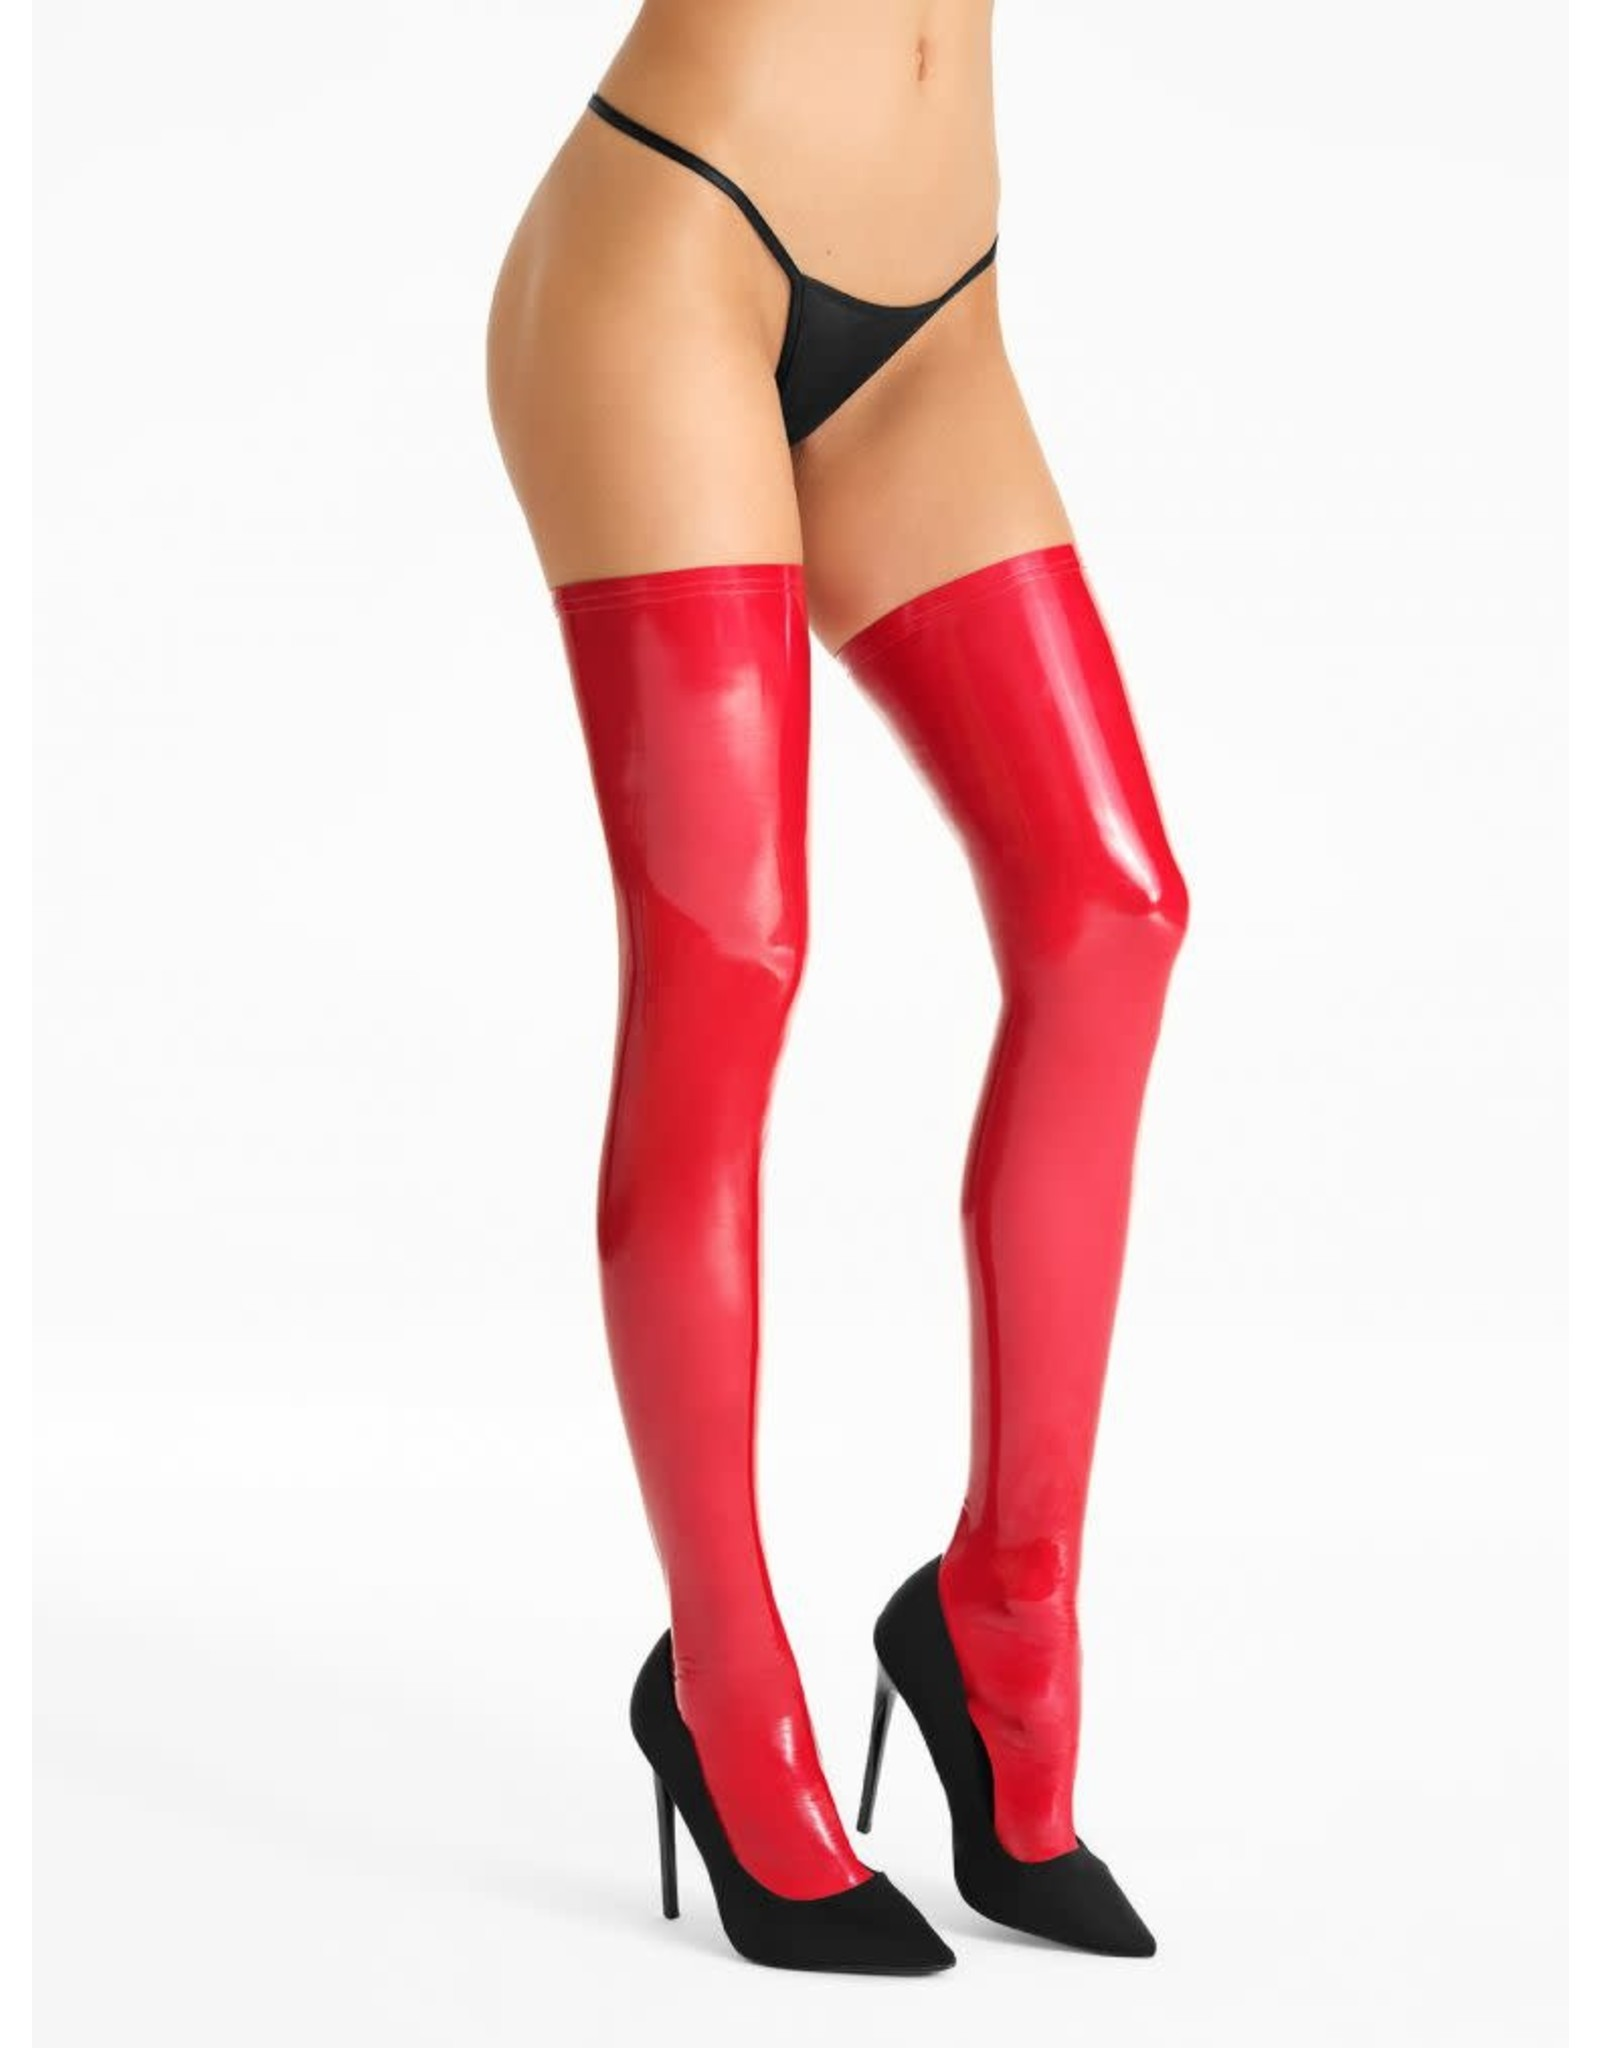 7 HEAVEN - ELASTIC VINYL (PVC) STOCKINGS WITH A MIRROR GLOSS STRIKING EFFECT - SMALL/MEDIUM